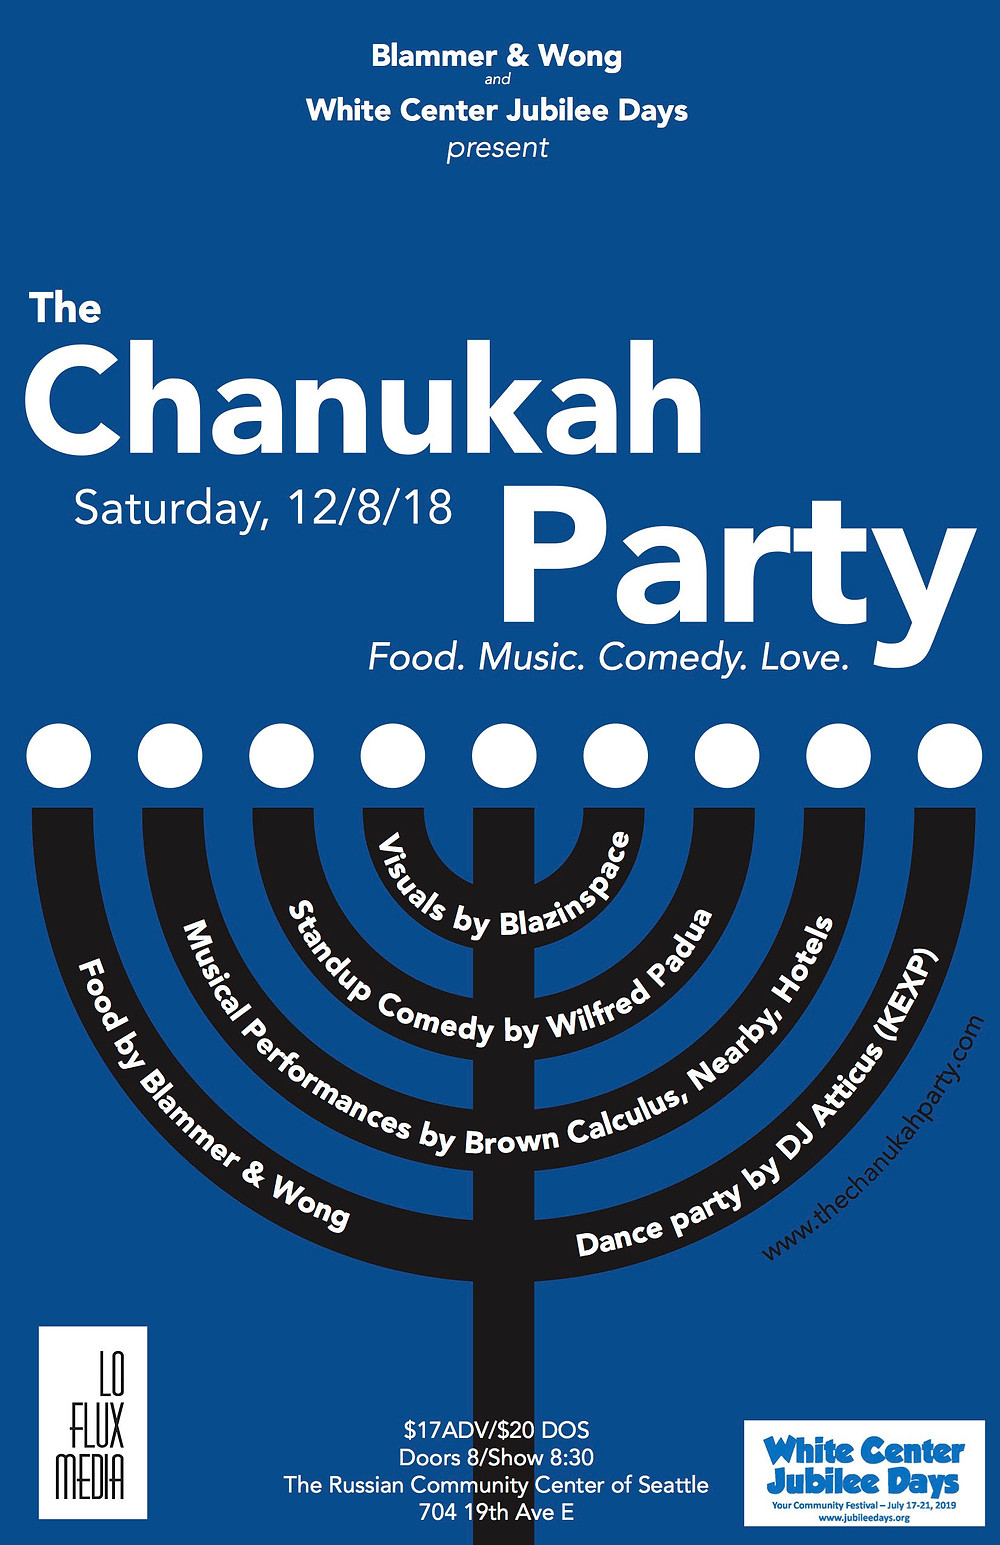 The Chanukah Party poster